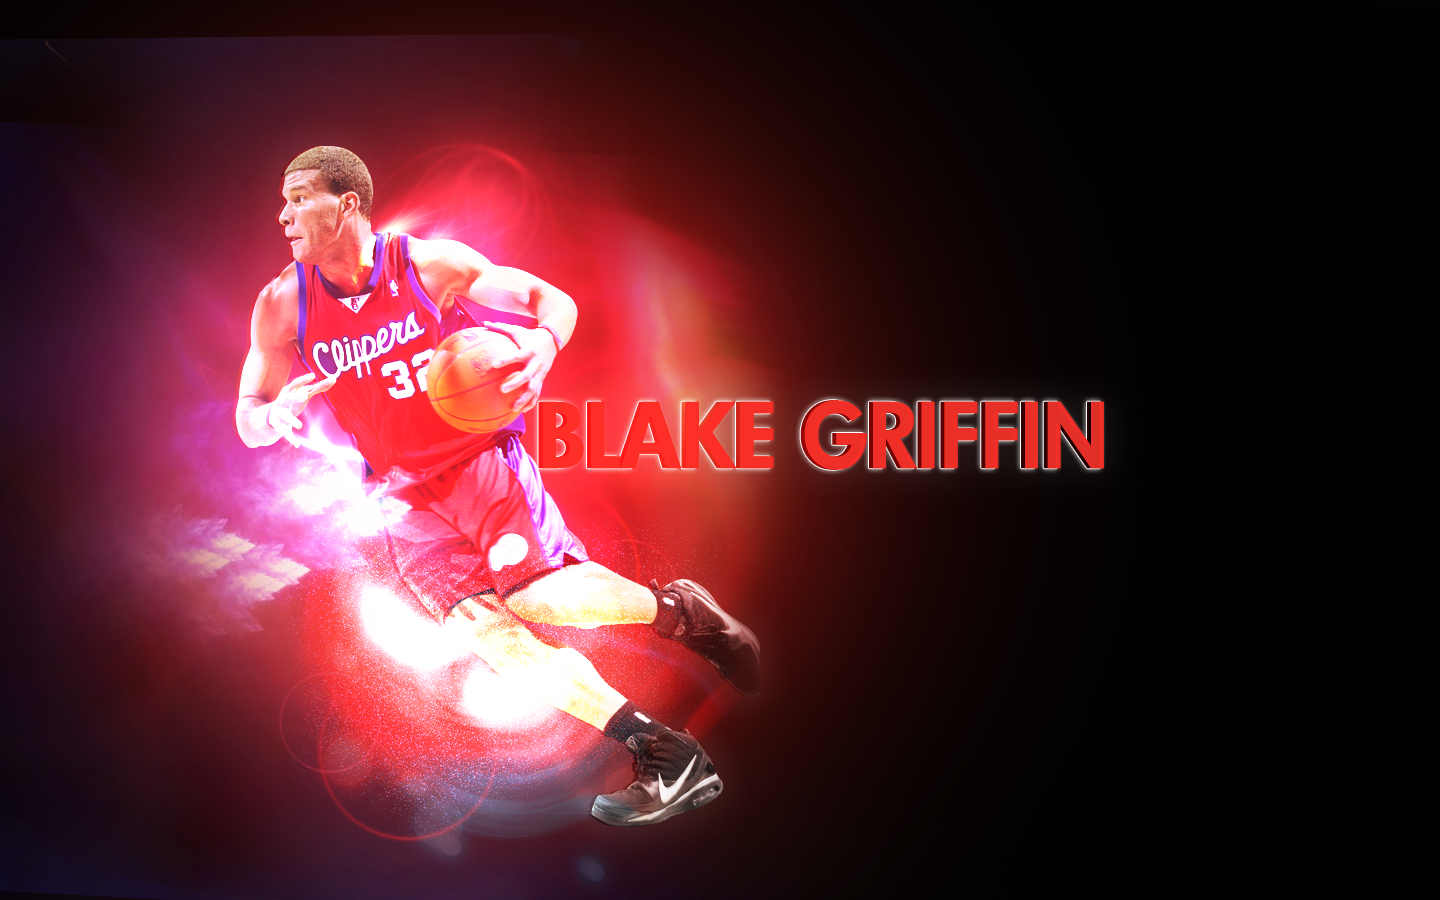 Sweet Blake Griffin Wallpaper